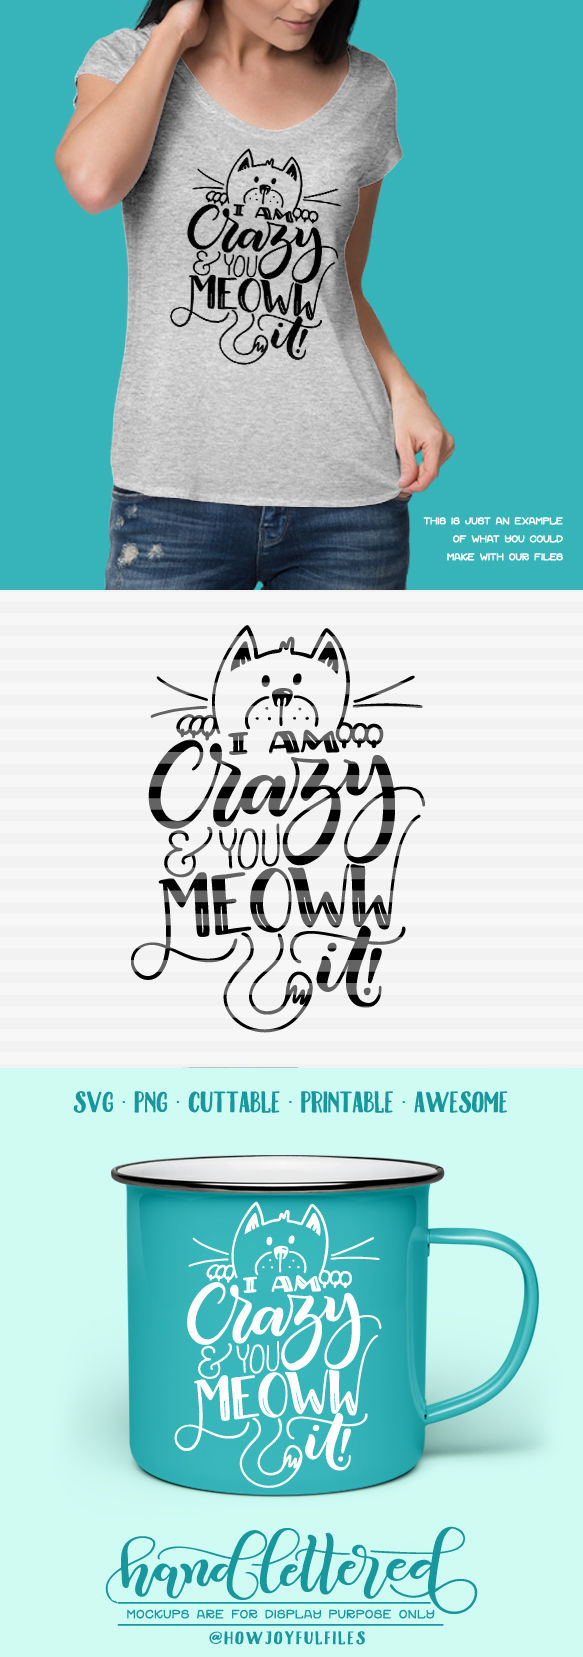 I Am Crazy And You Meoww It Crazy Cat Lady Hand Lettered Cut File By Howjoyful Files Thehungryjpeg Com